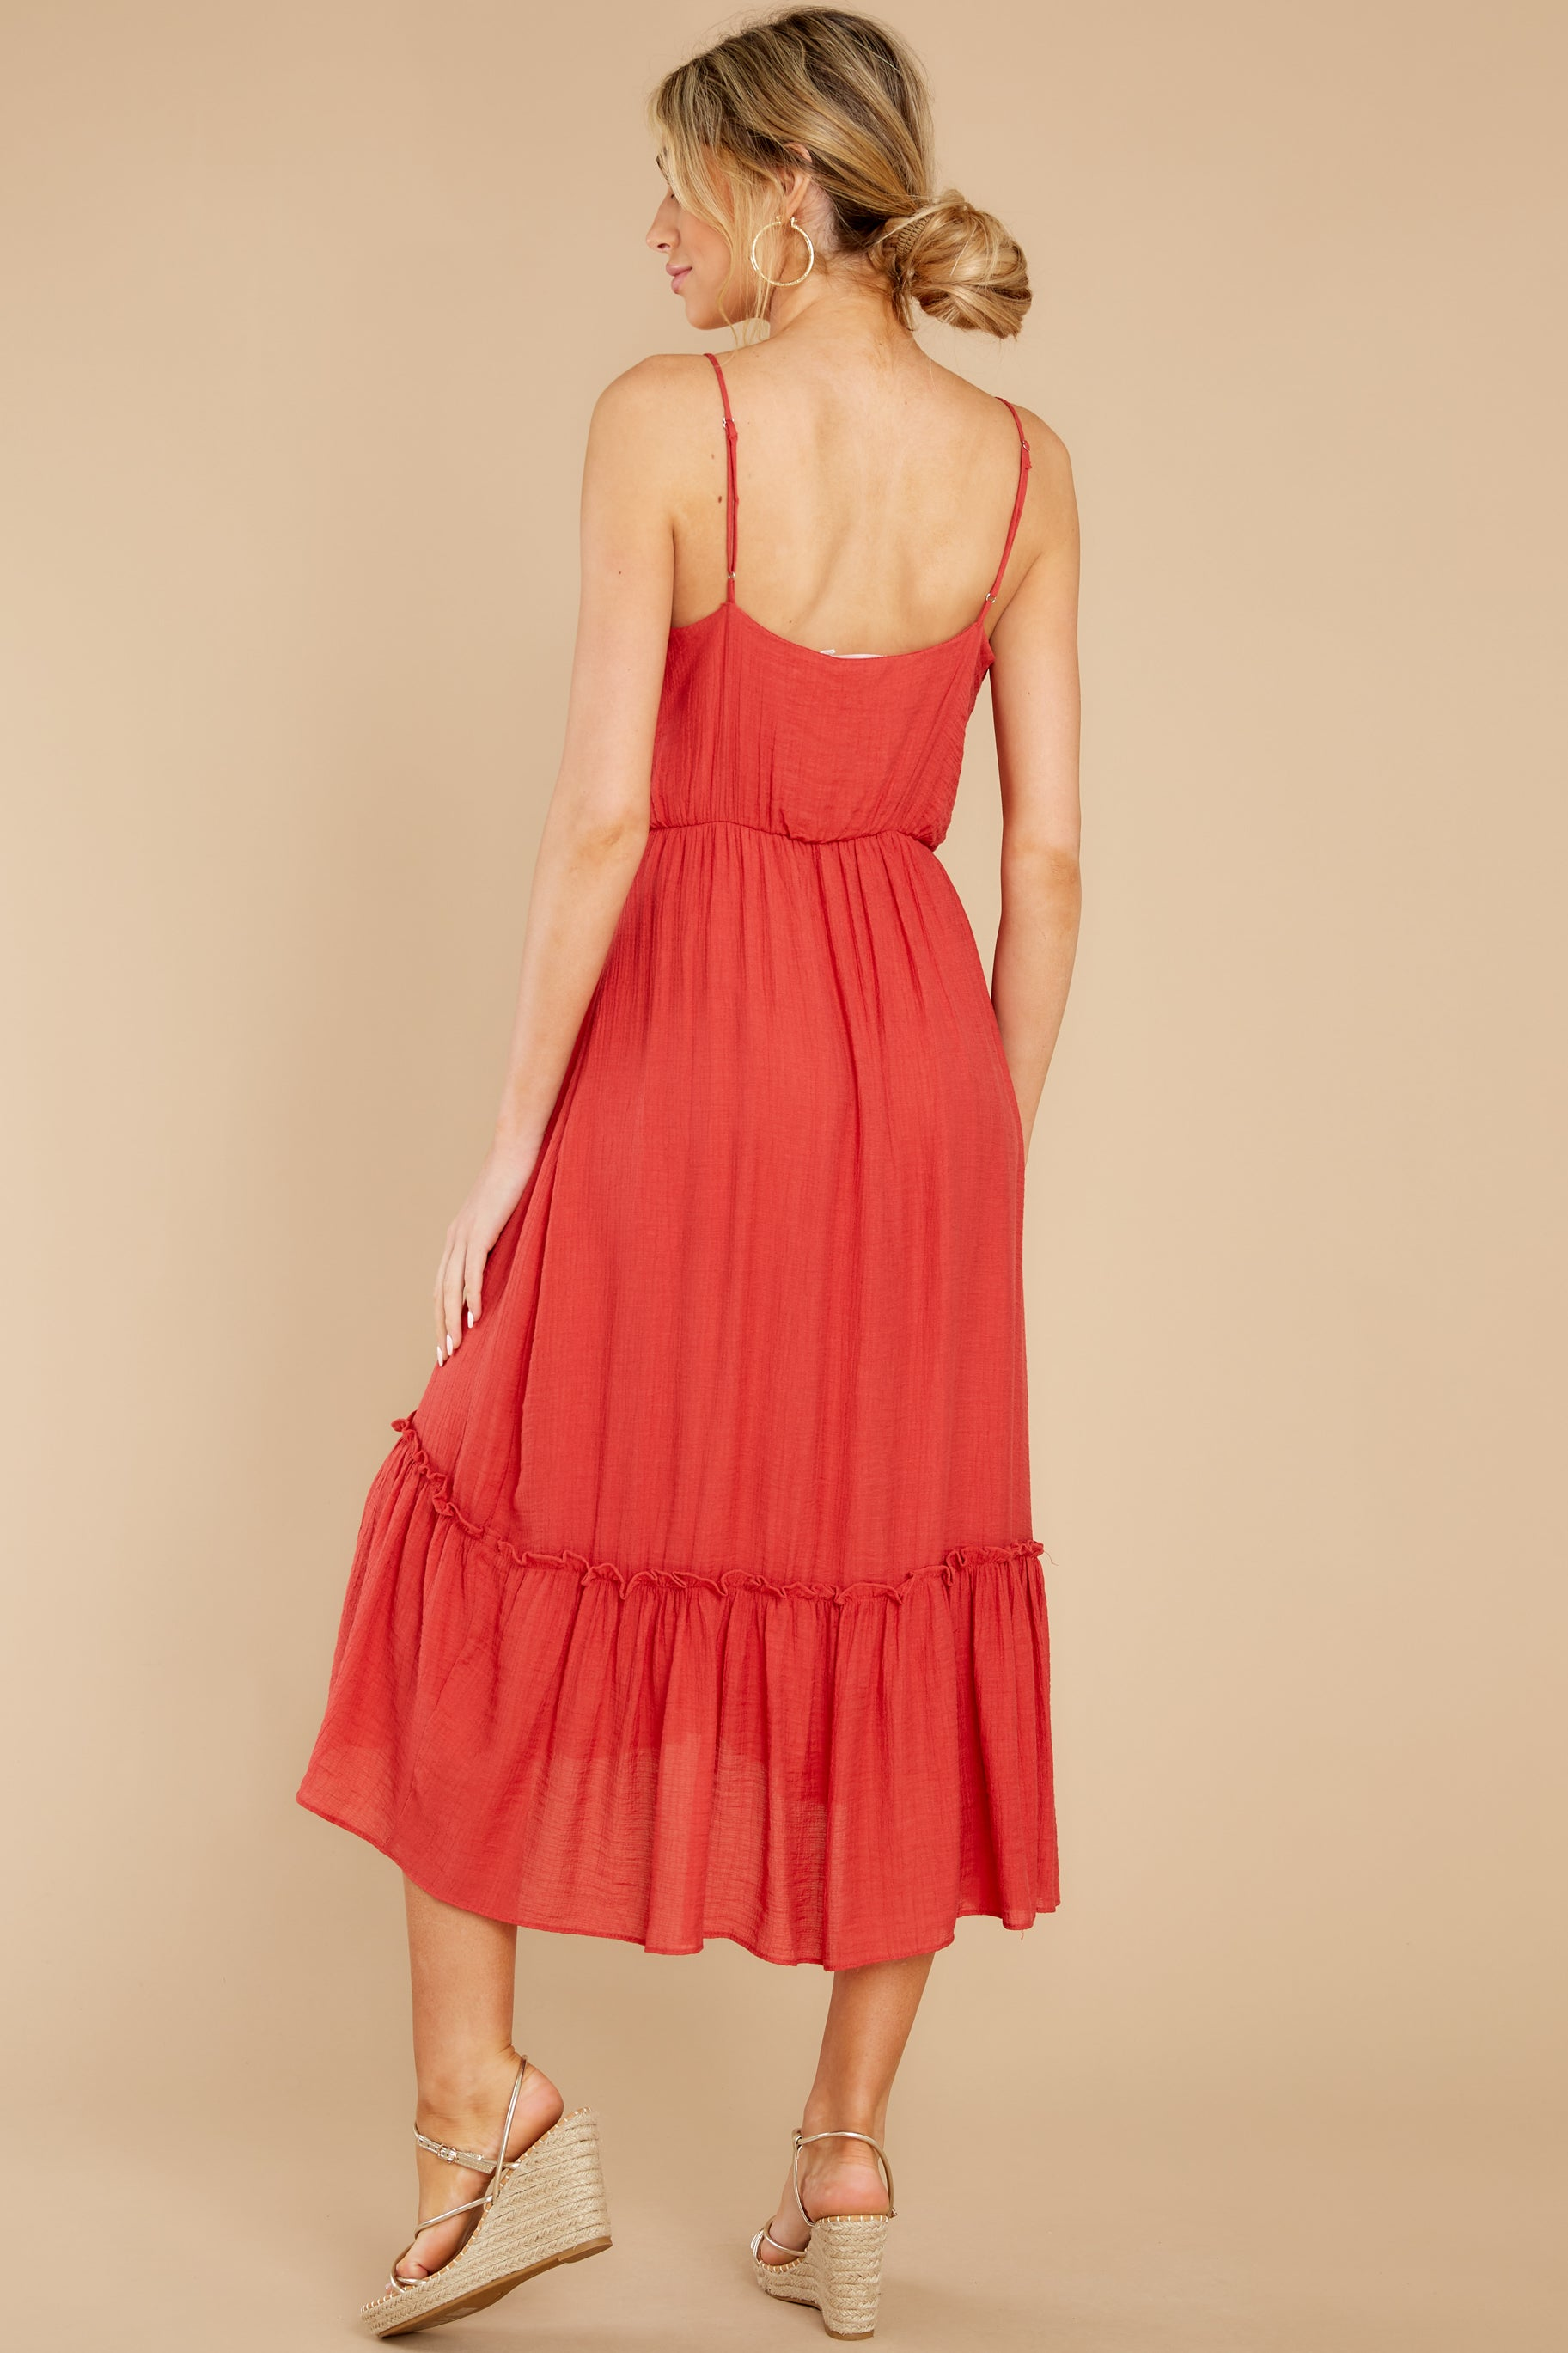 8 Another Round Coral Red Maxi Dress at reddress.com